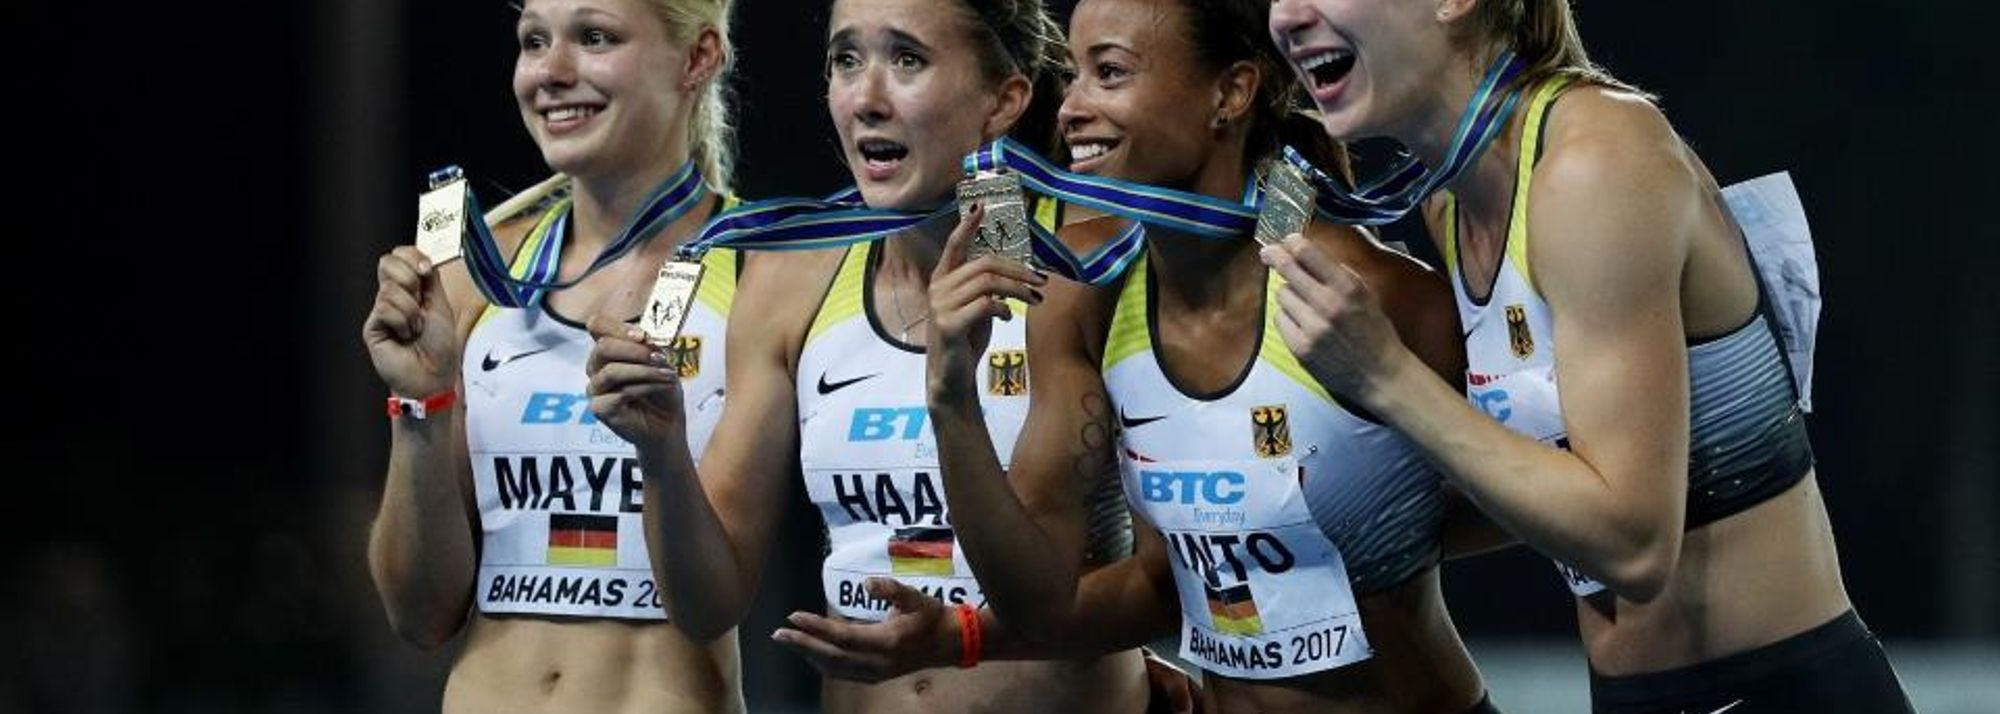 After producing a confidence-boosting victory in their opening round heat of the 4x100m, the same inspired German quartet rode that improbable momentum all the way into the final where they produced their first IAAF/BTC World Relays title.